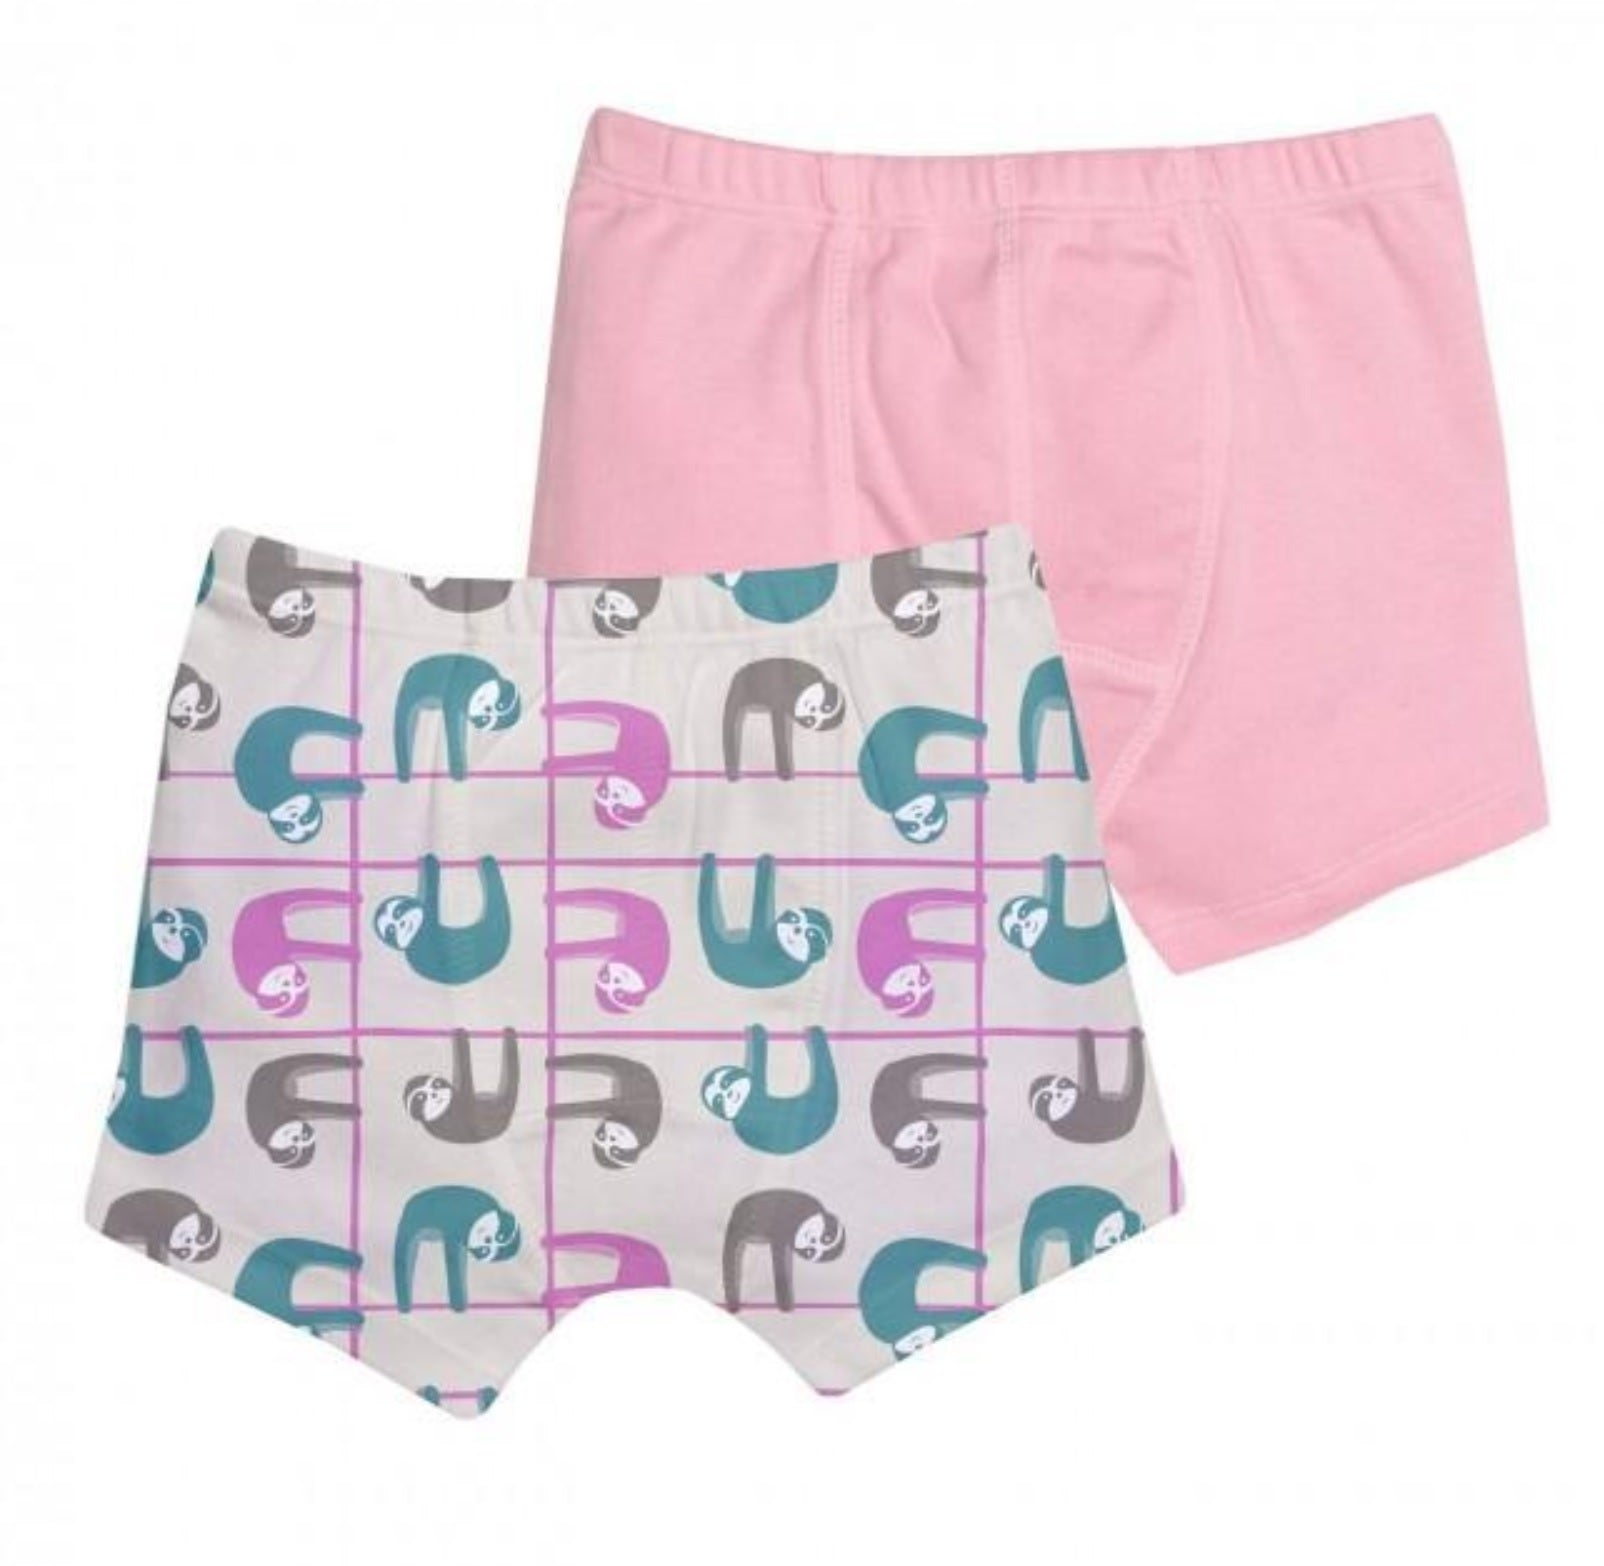 Grovia Unders Toddler Underwear 2pk- Pastel Sloth